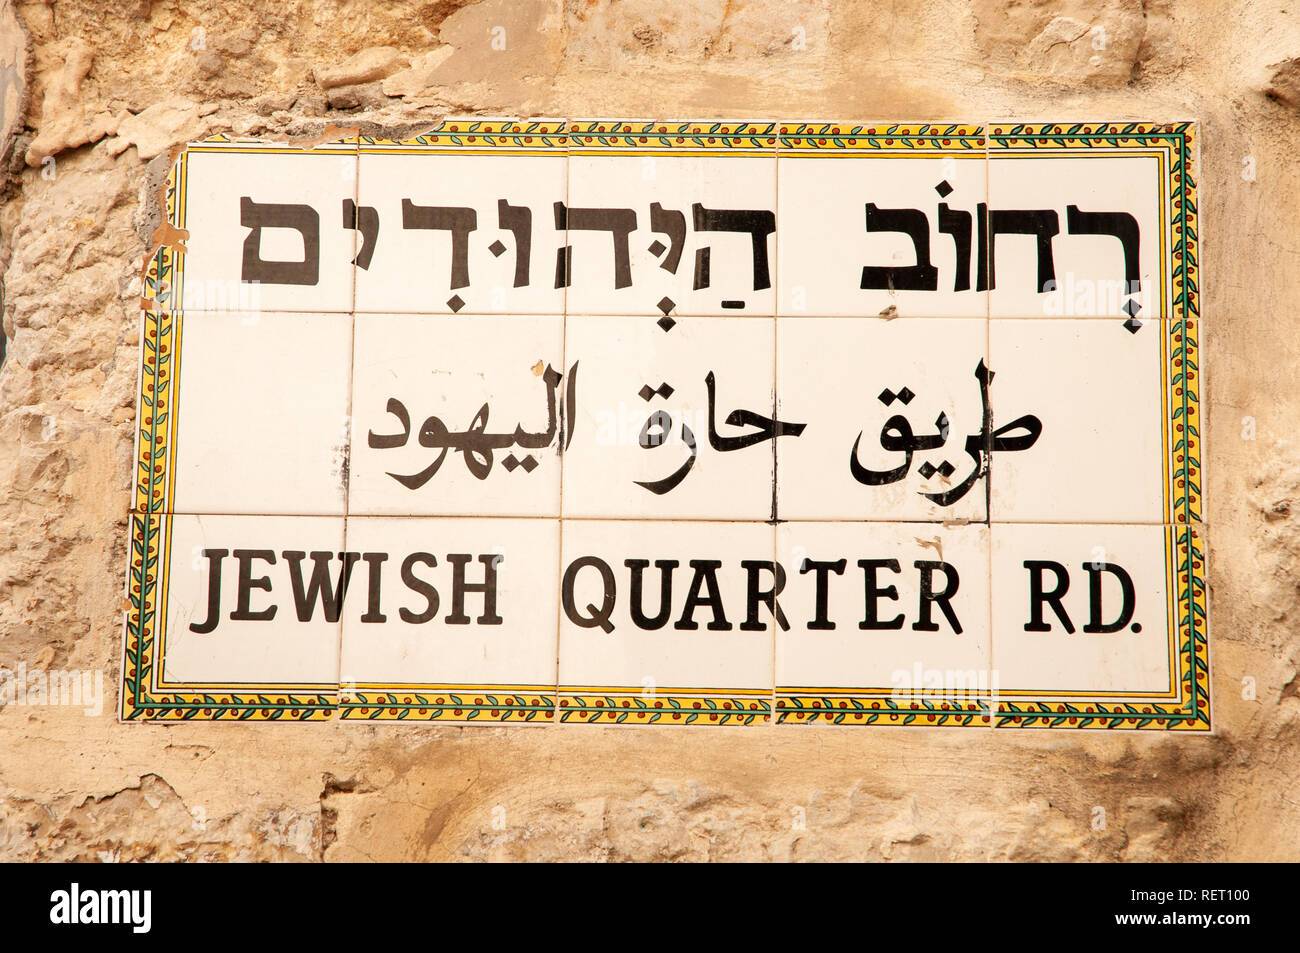 Jewish Quarter Road in the Old City, Jerusalem, Israel - Stock Image